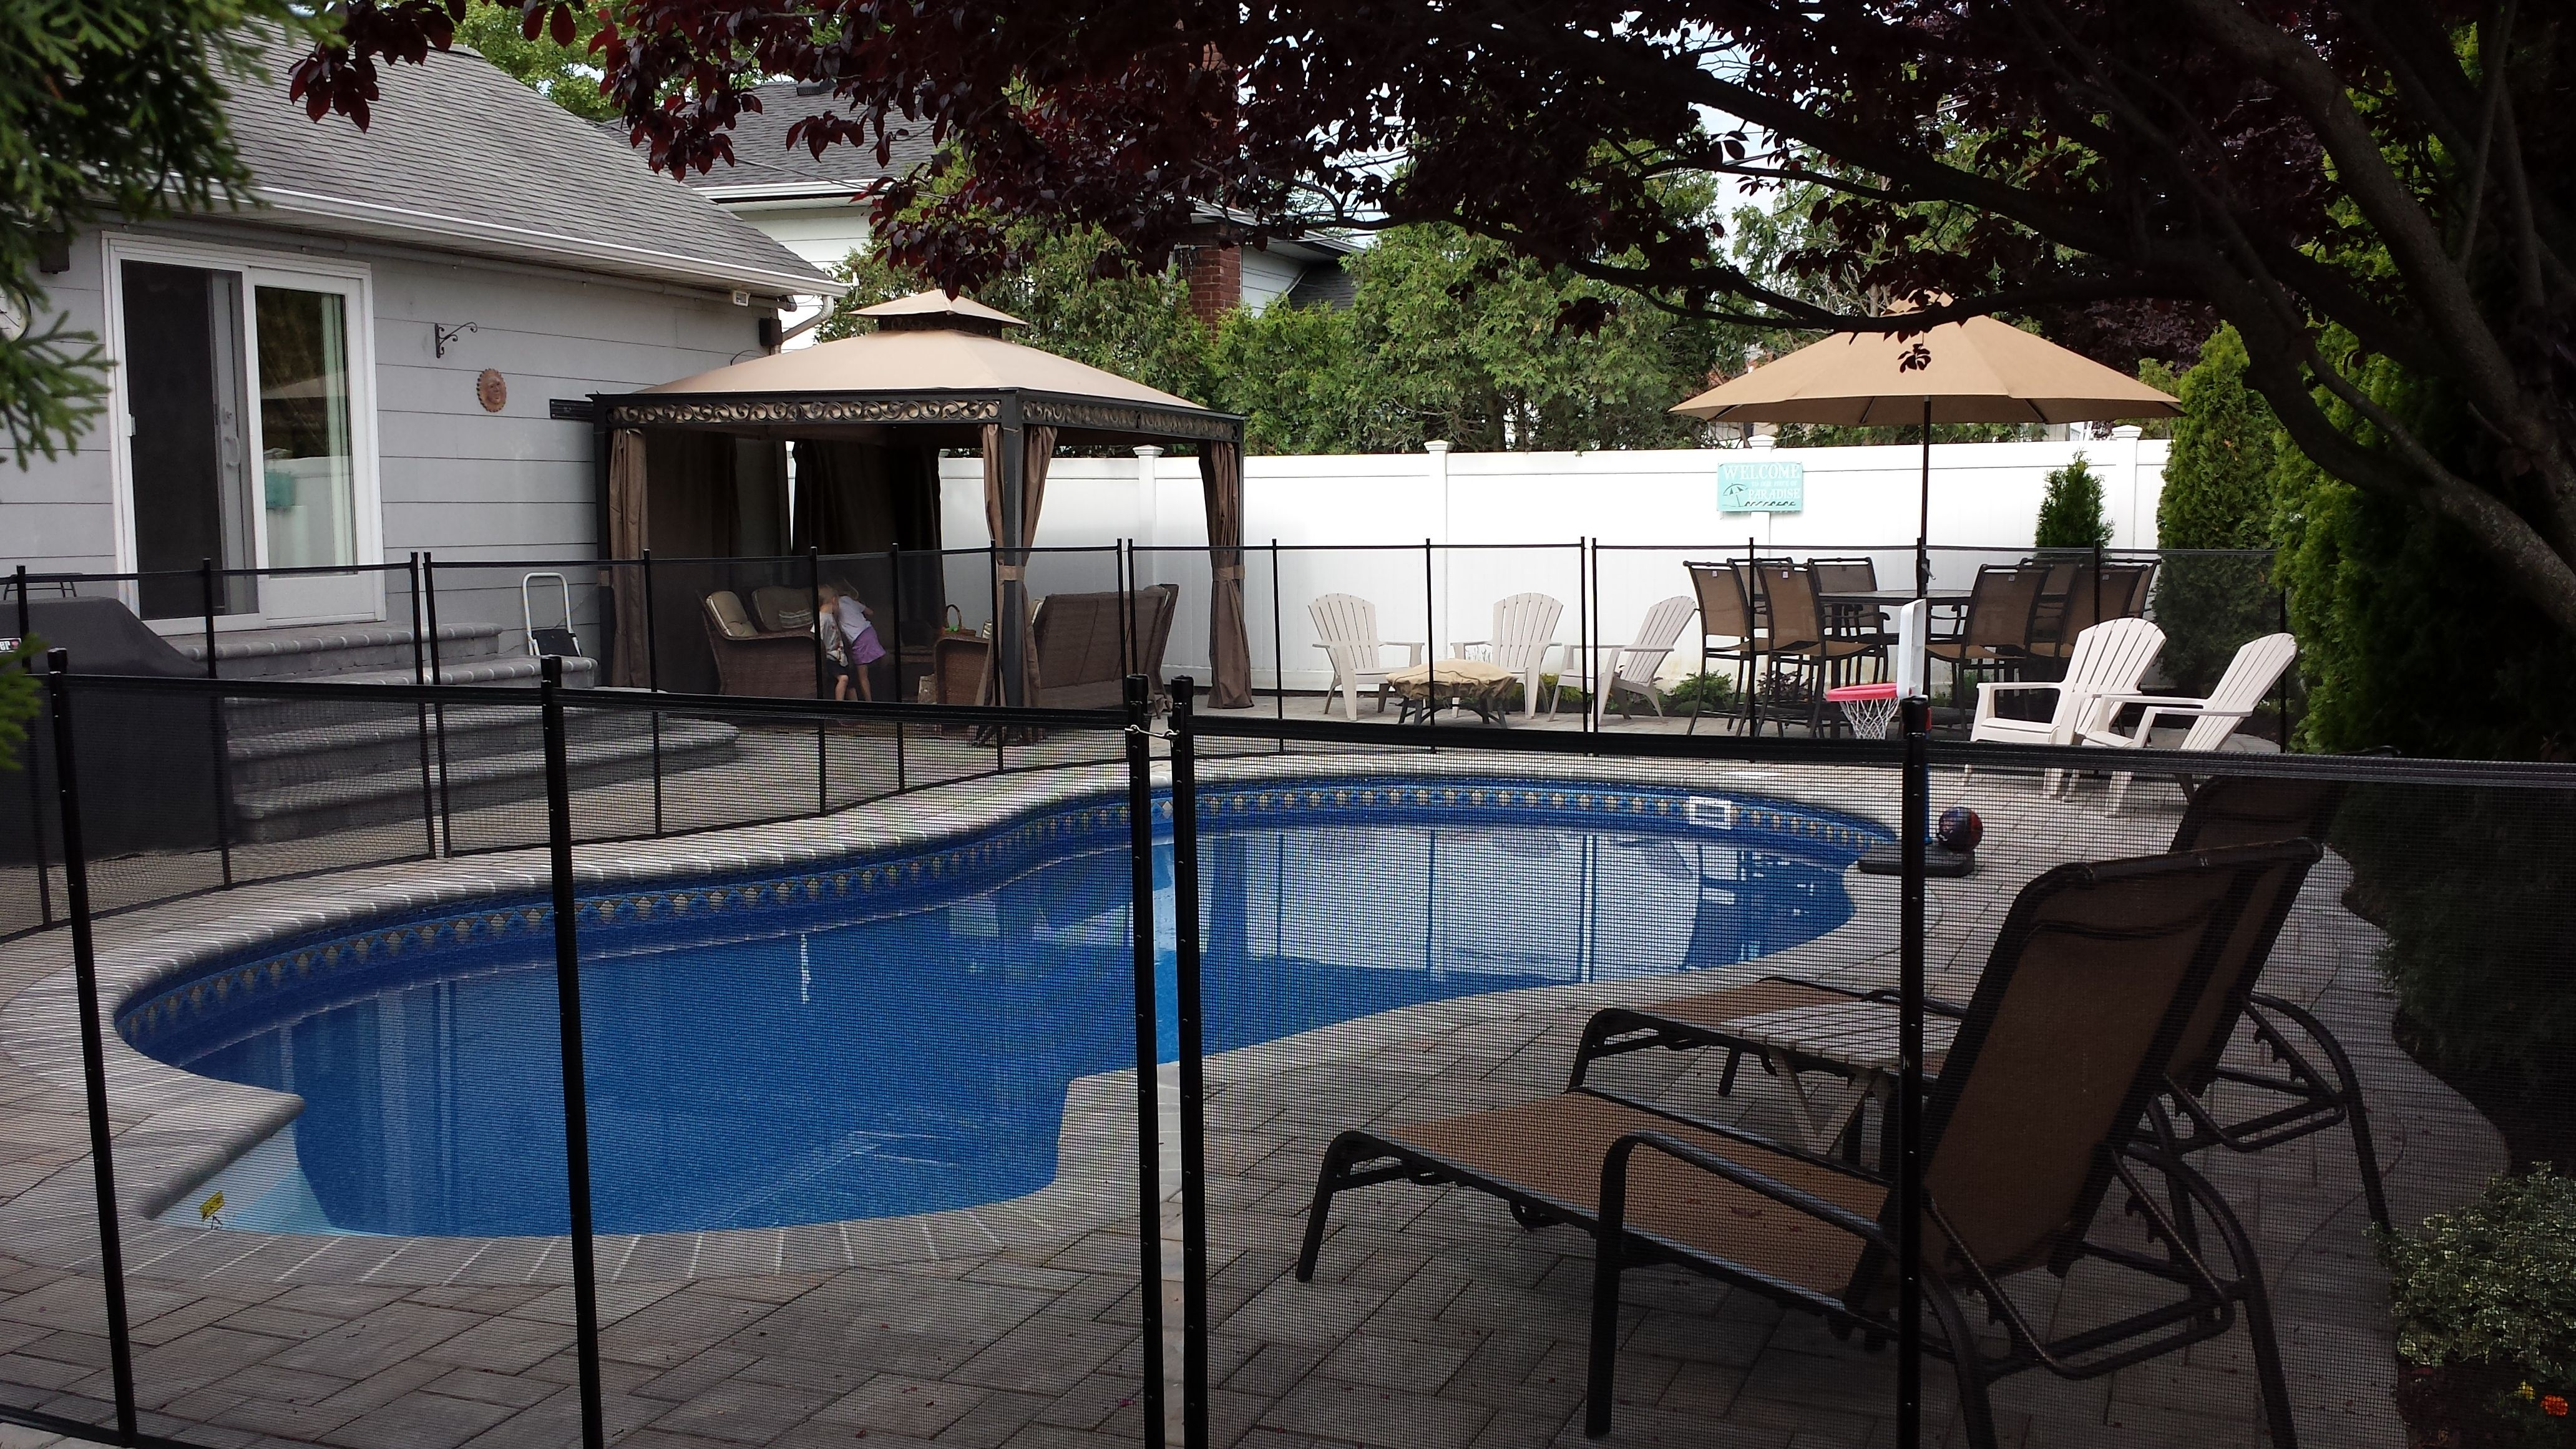 16x28 radiant in ground freeform pool with safety fence